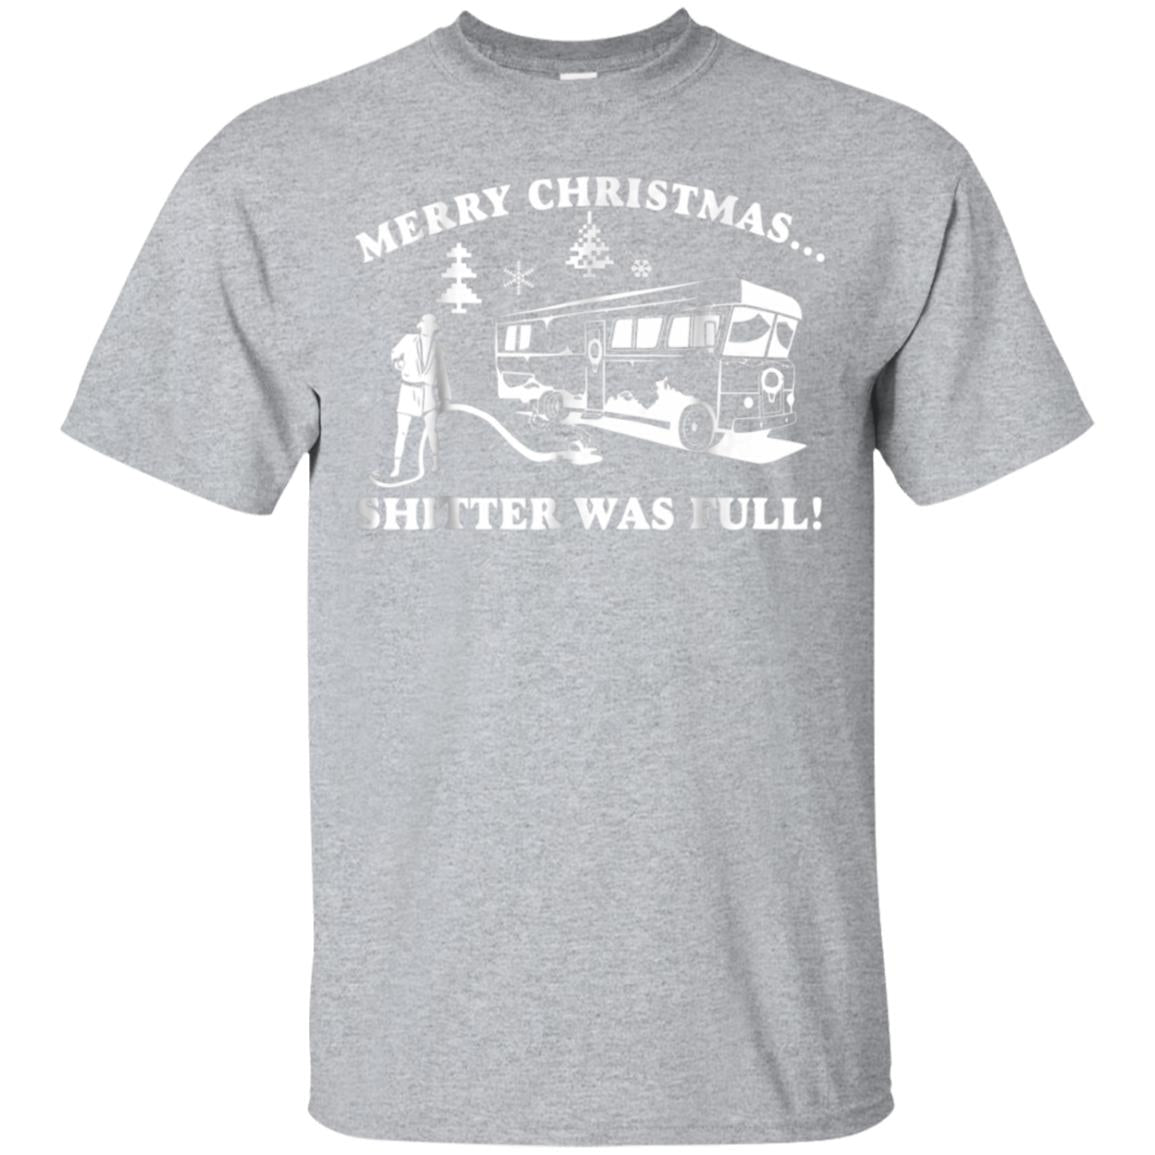 Funny Merry Christmas T Shirt Shitter was Full 99promocode